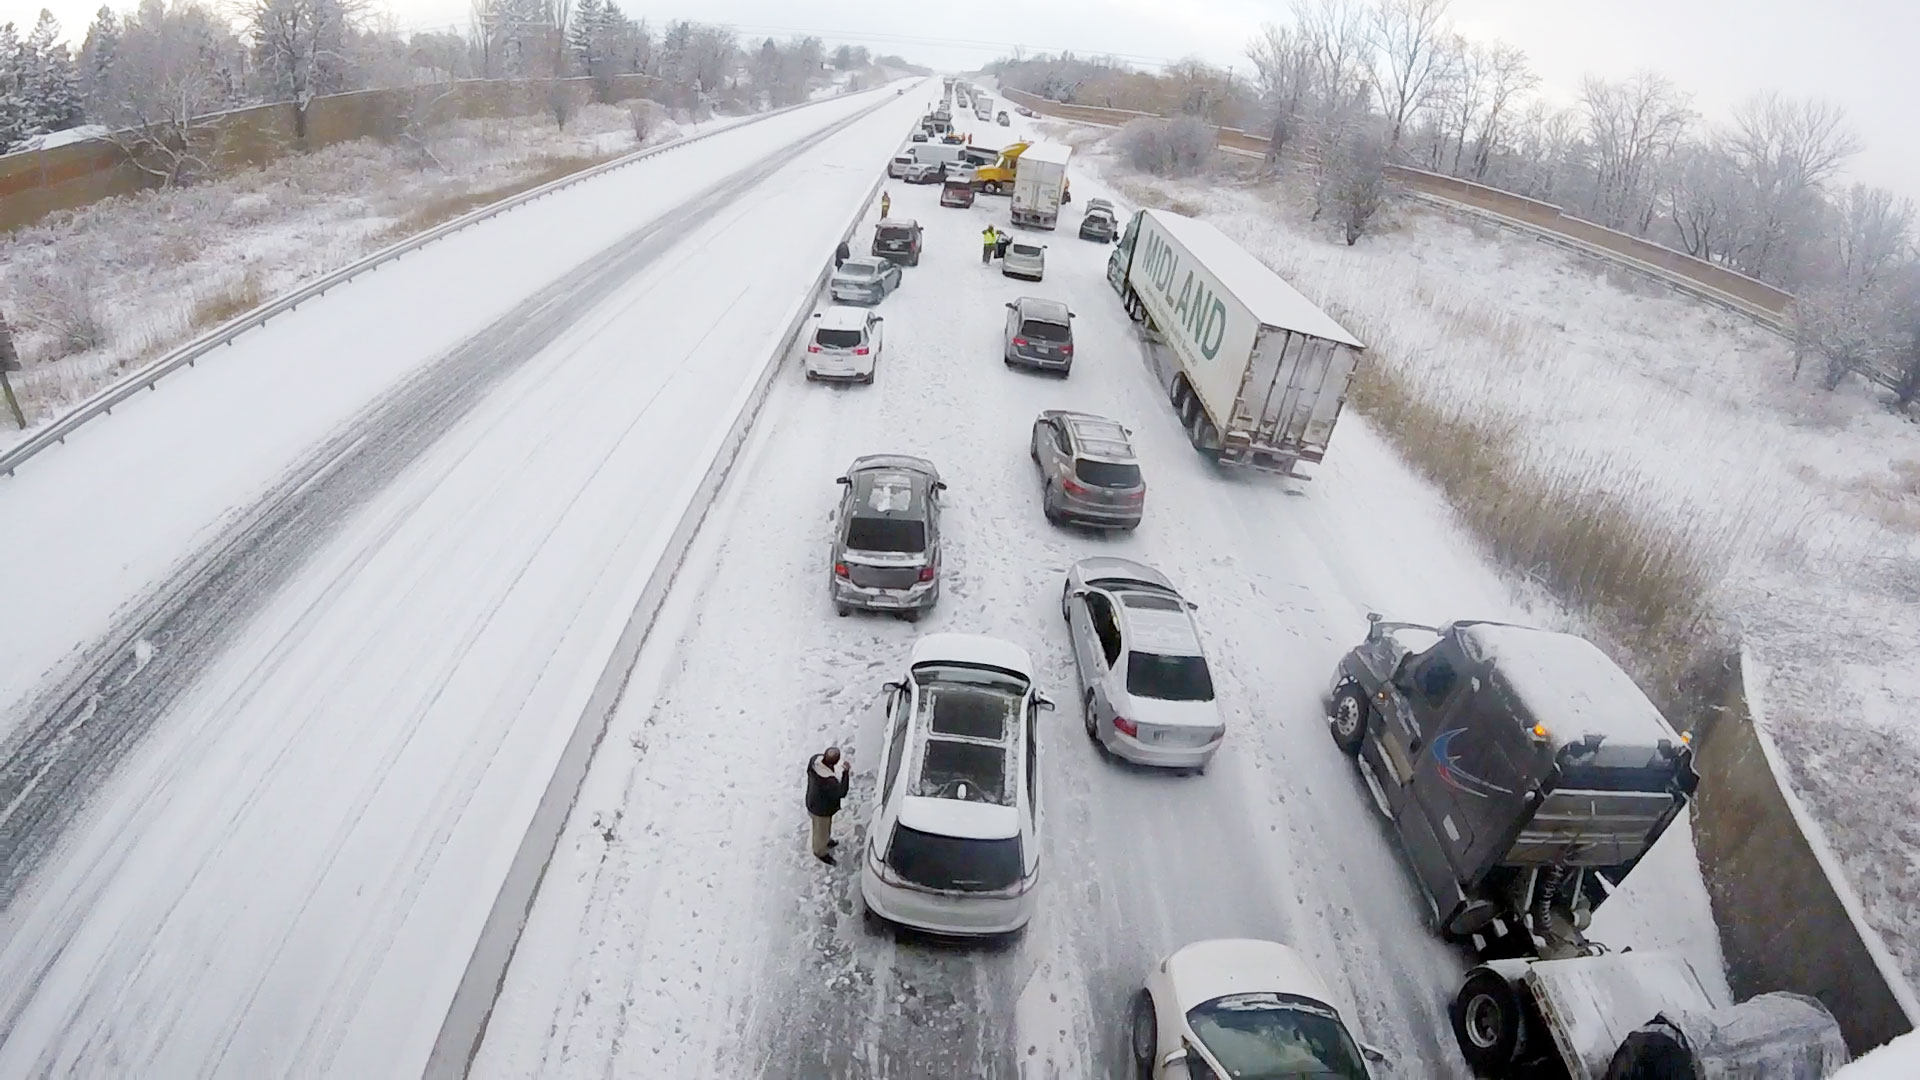 100 car pileup in Ontario